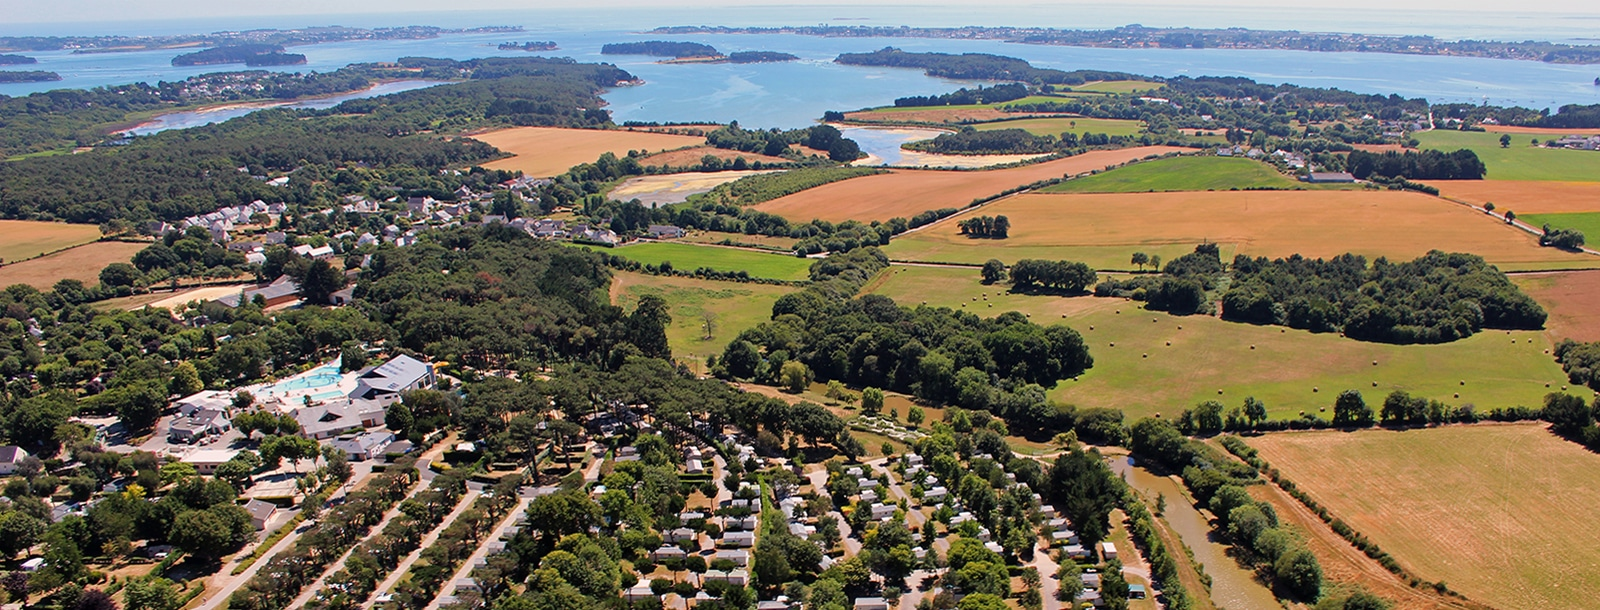 In the Gulf of Morbihan, 1km from the seaside, 3km from the beach